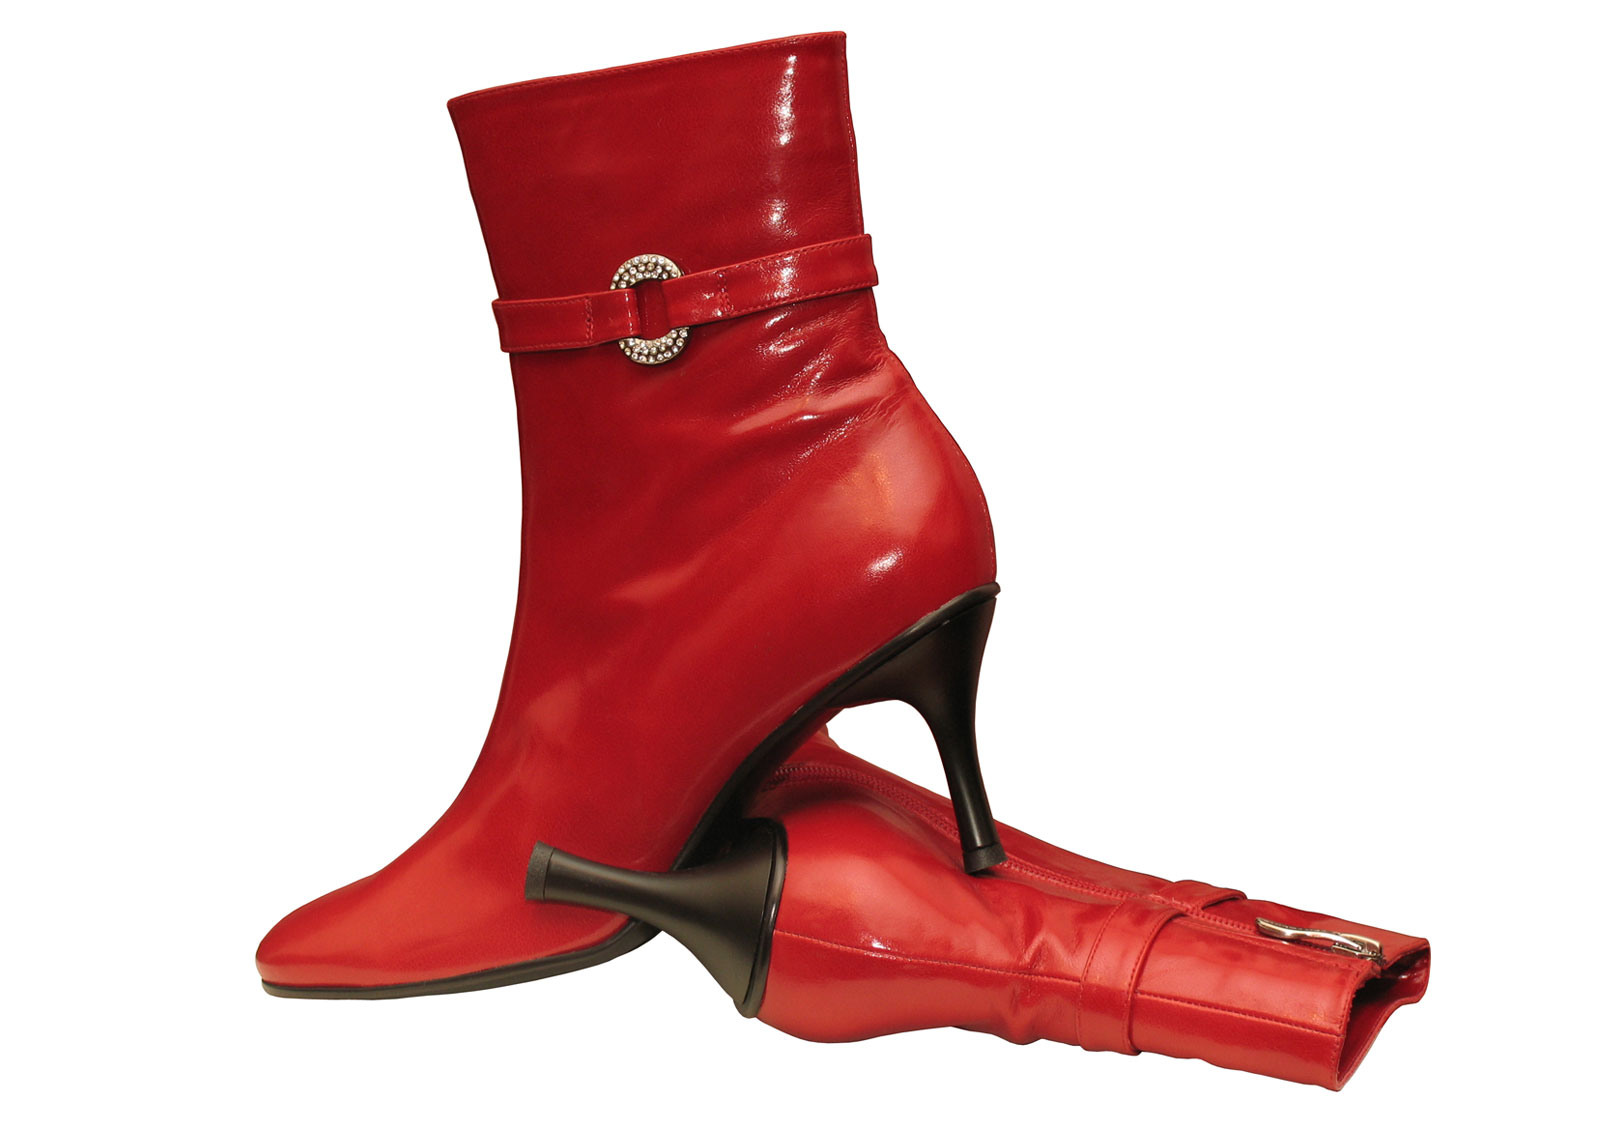 Red-Boots-High-Heel.jpg